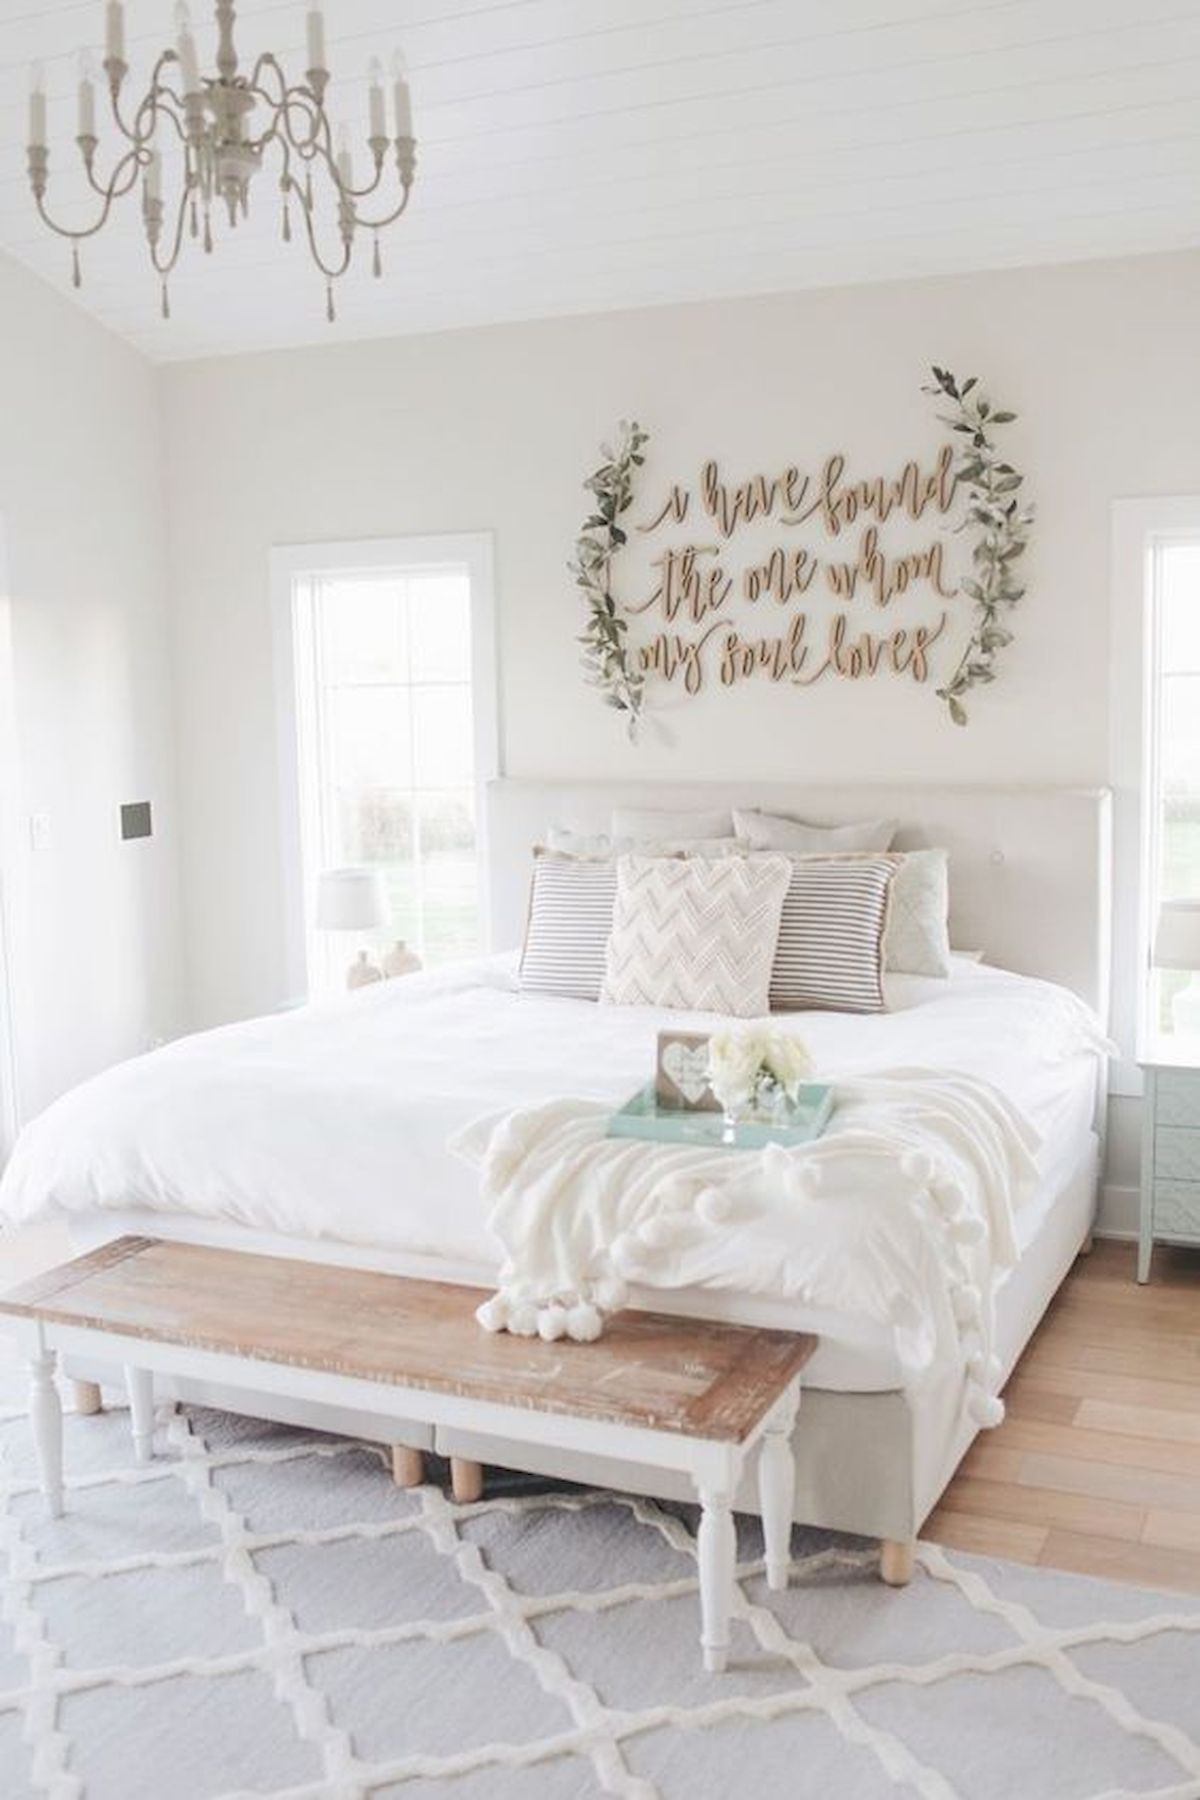 53 best farmhouse wall decor ideas for bedroom ideaboz - Bedroom wall decor ideas ...